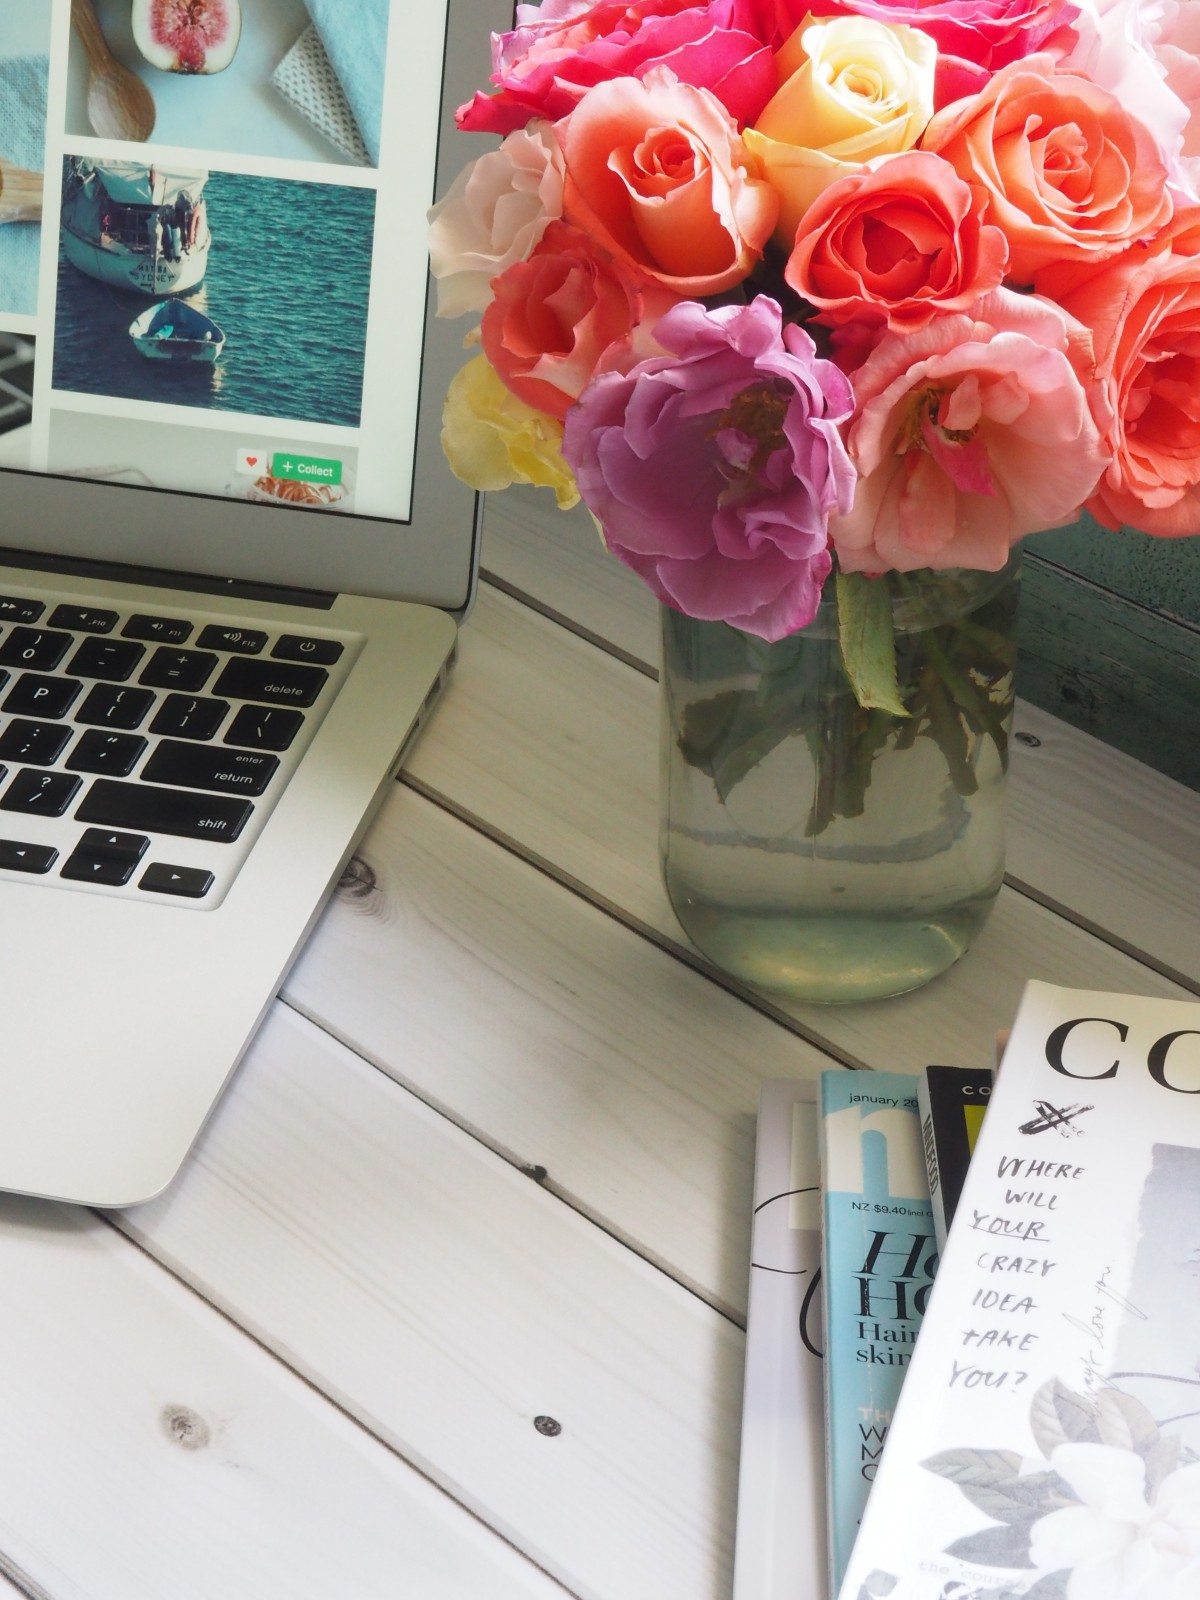 Laptop, flowers and magazines